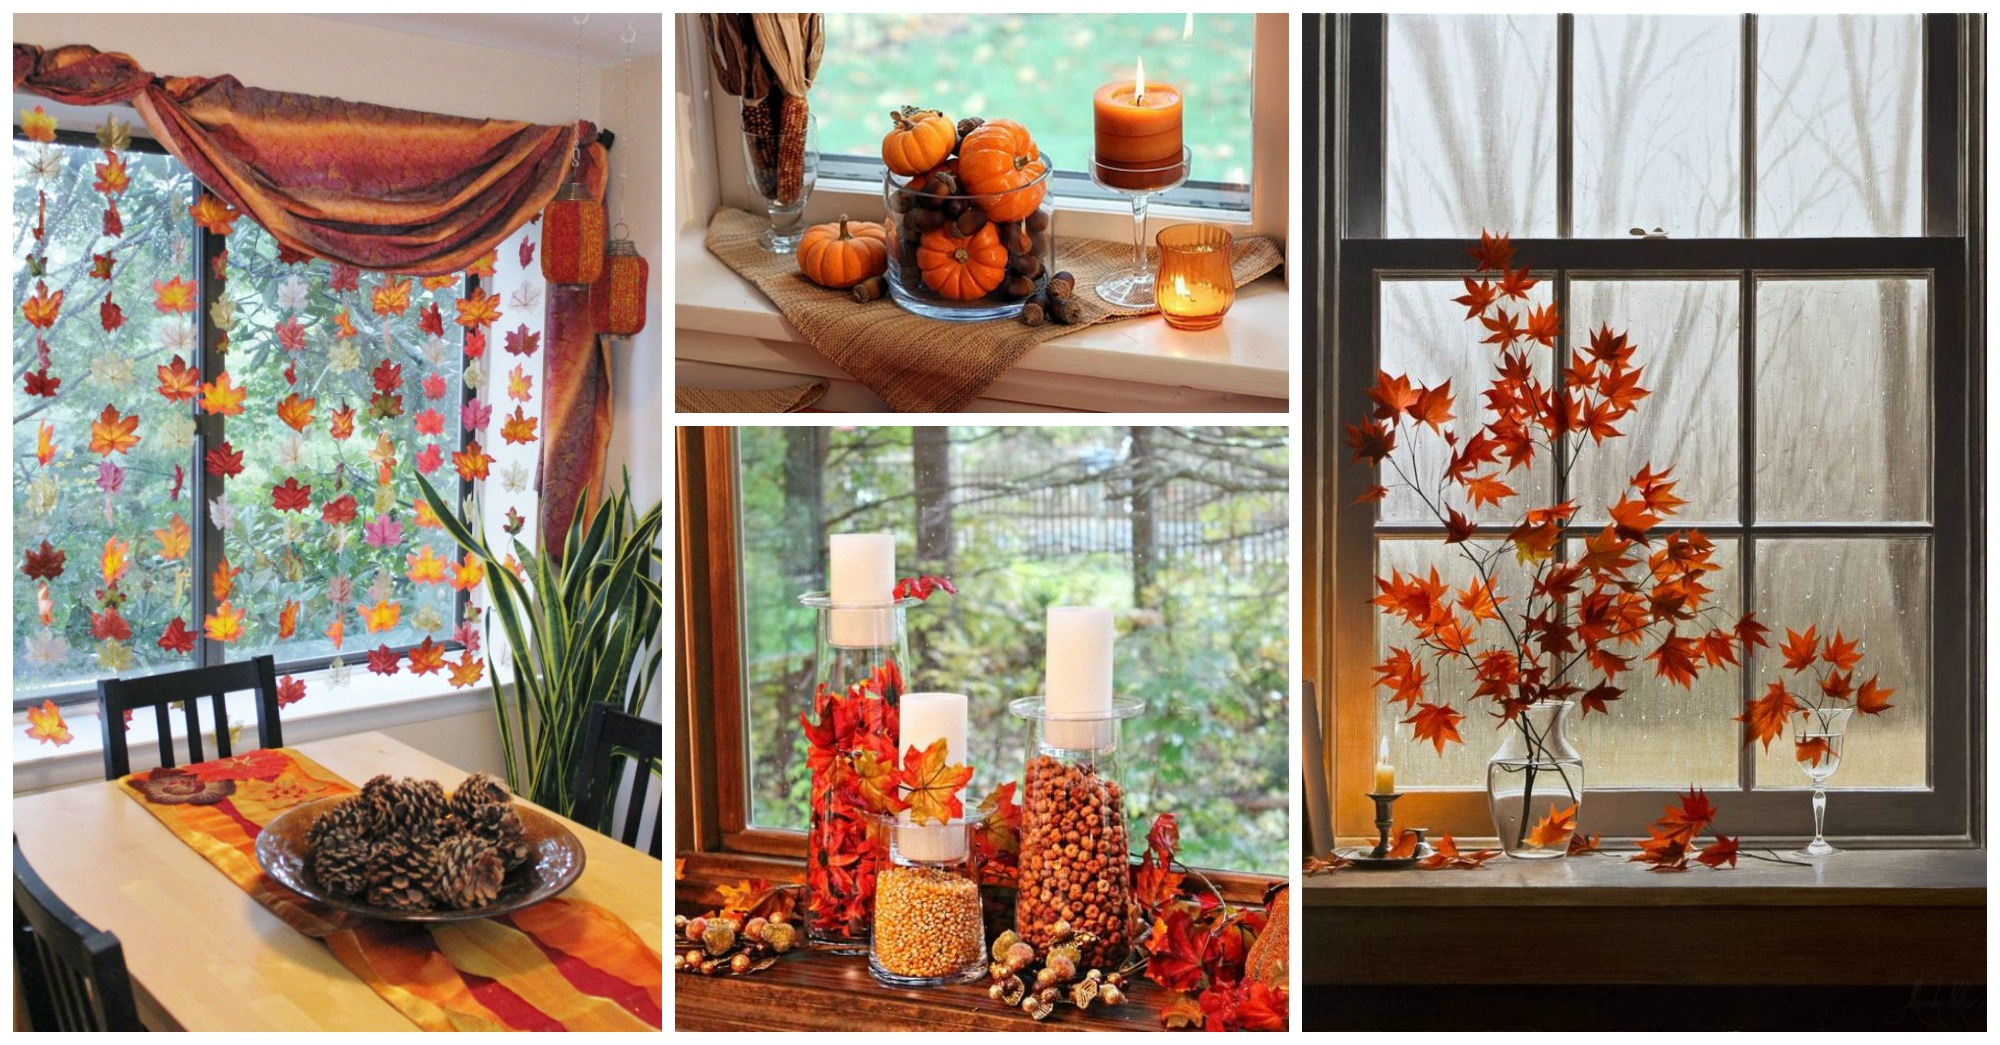 13 Amazing Ways To Decorate The Windows This Fall